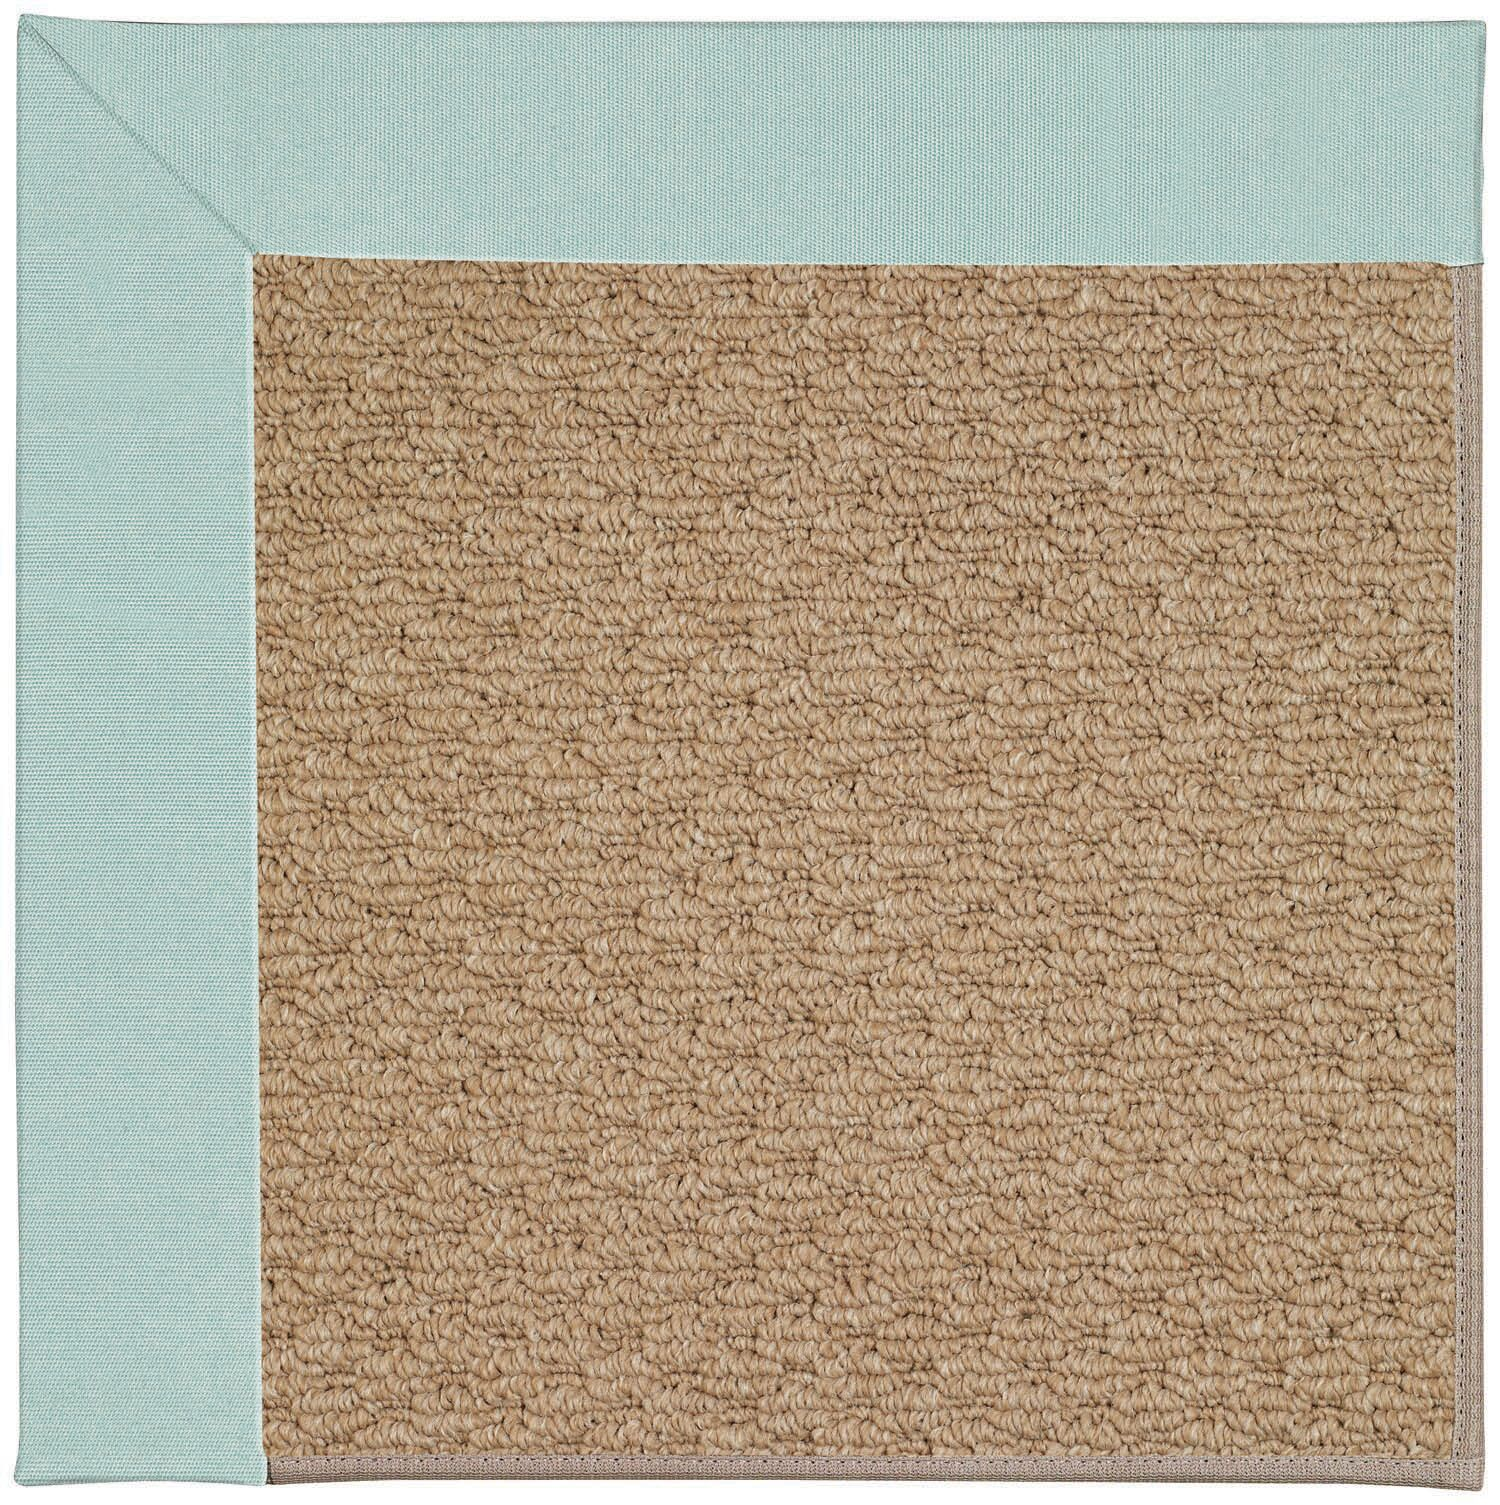 Lisle Machine Tufted Iceberg/Brown Indoor/Outdoor Area Rug Rug Size: Square 4'